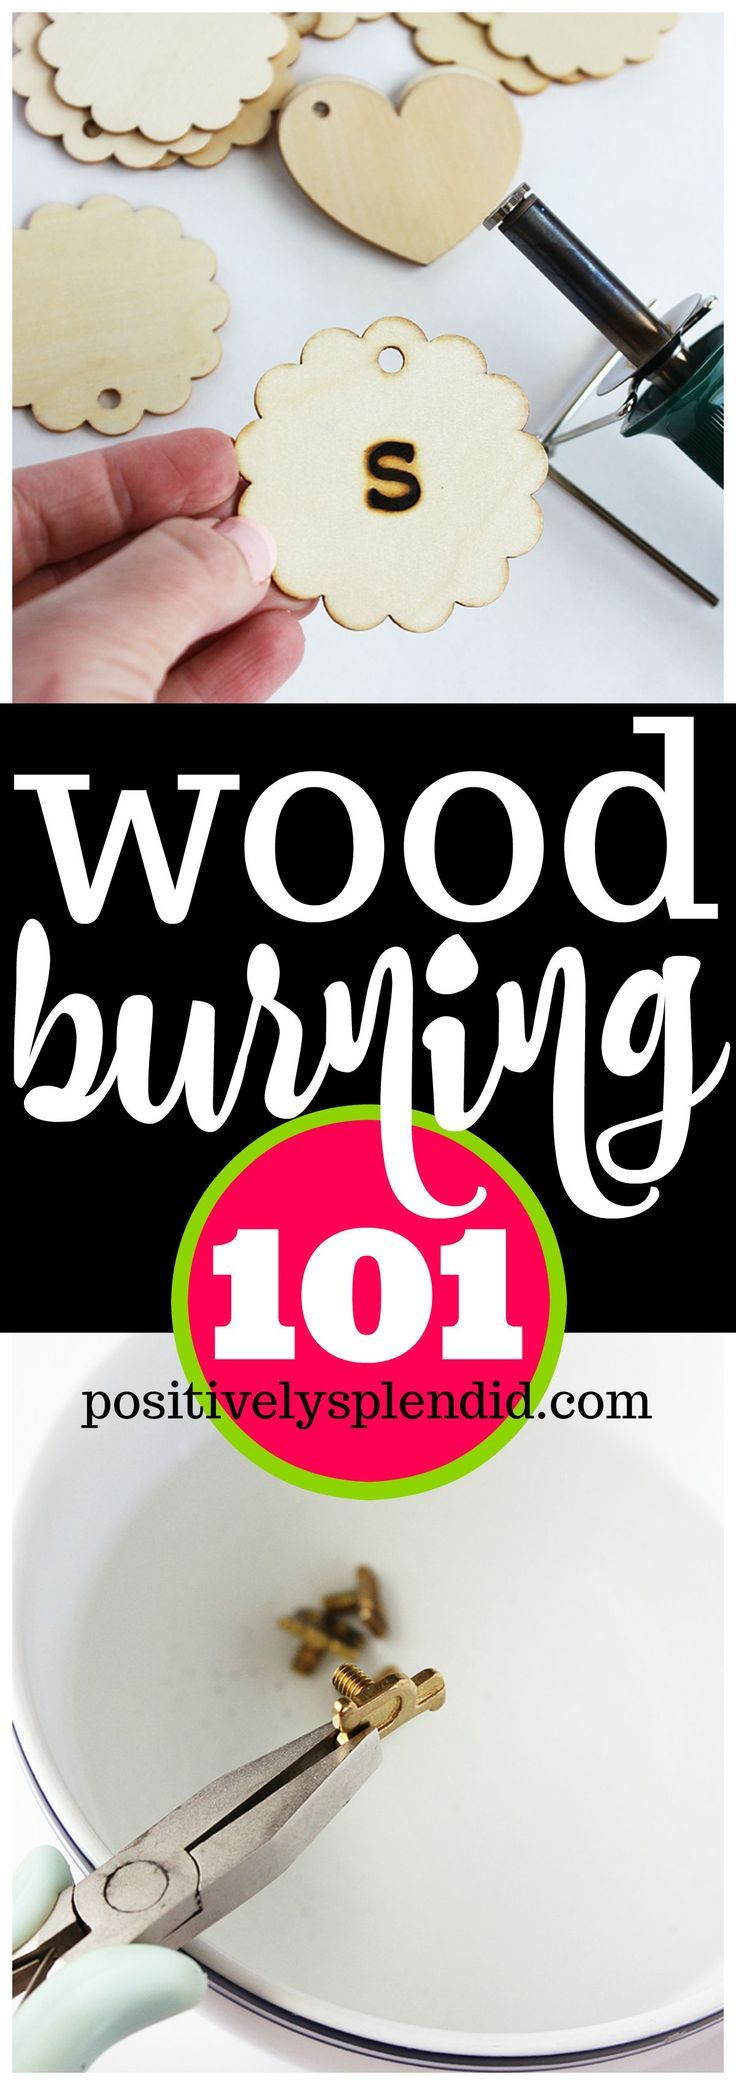 10 Wood Burning Tips for Beautiful Wood Burning Projects #burnedwoodstenciling